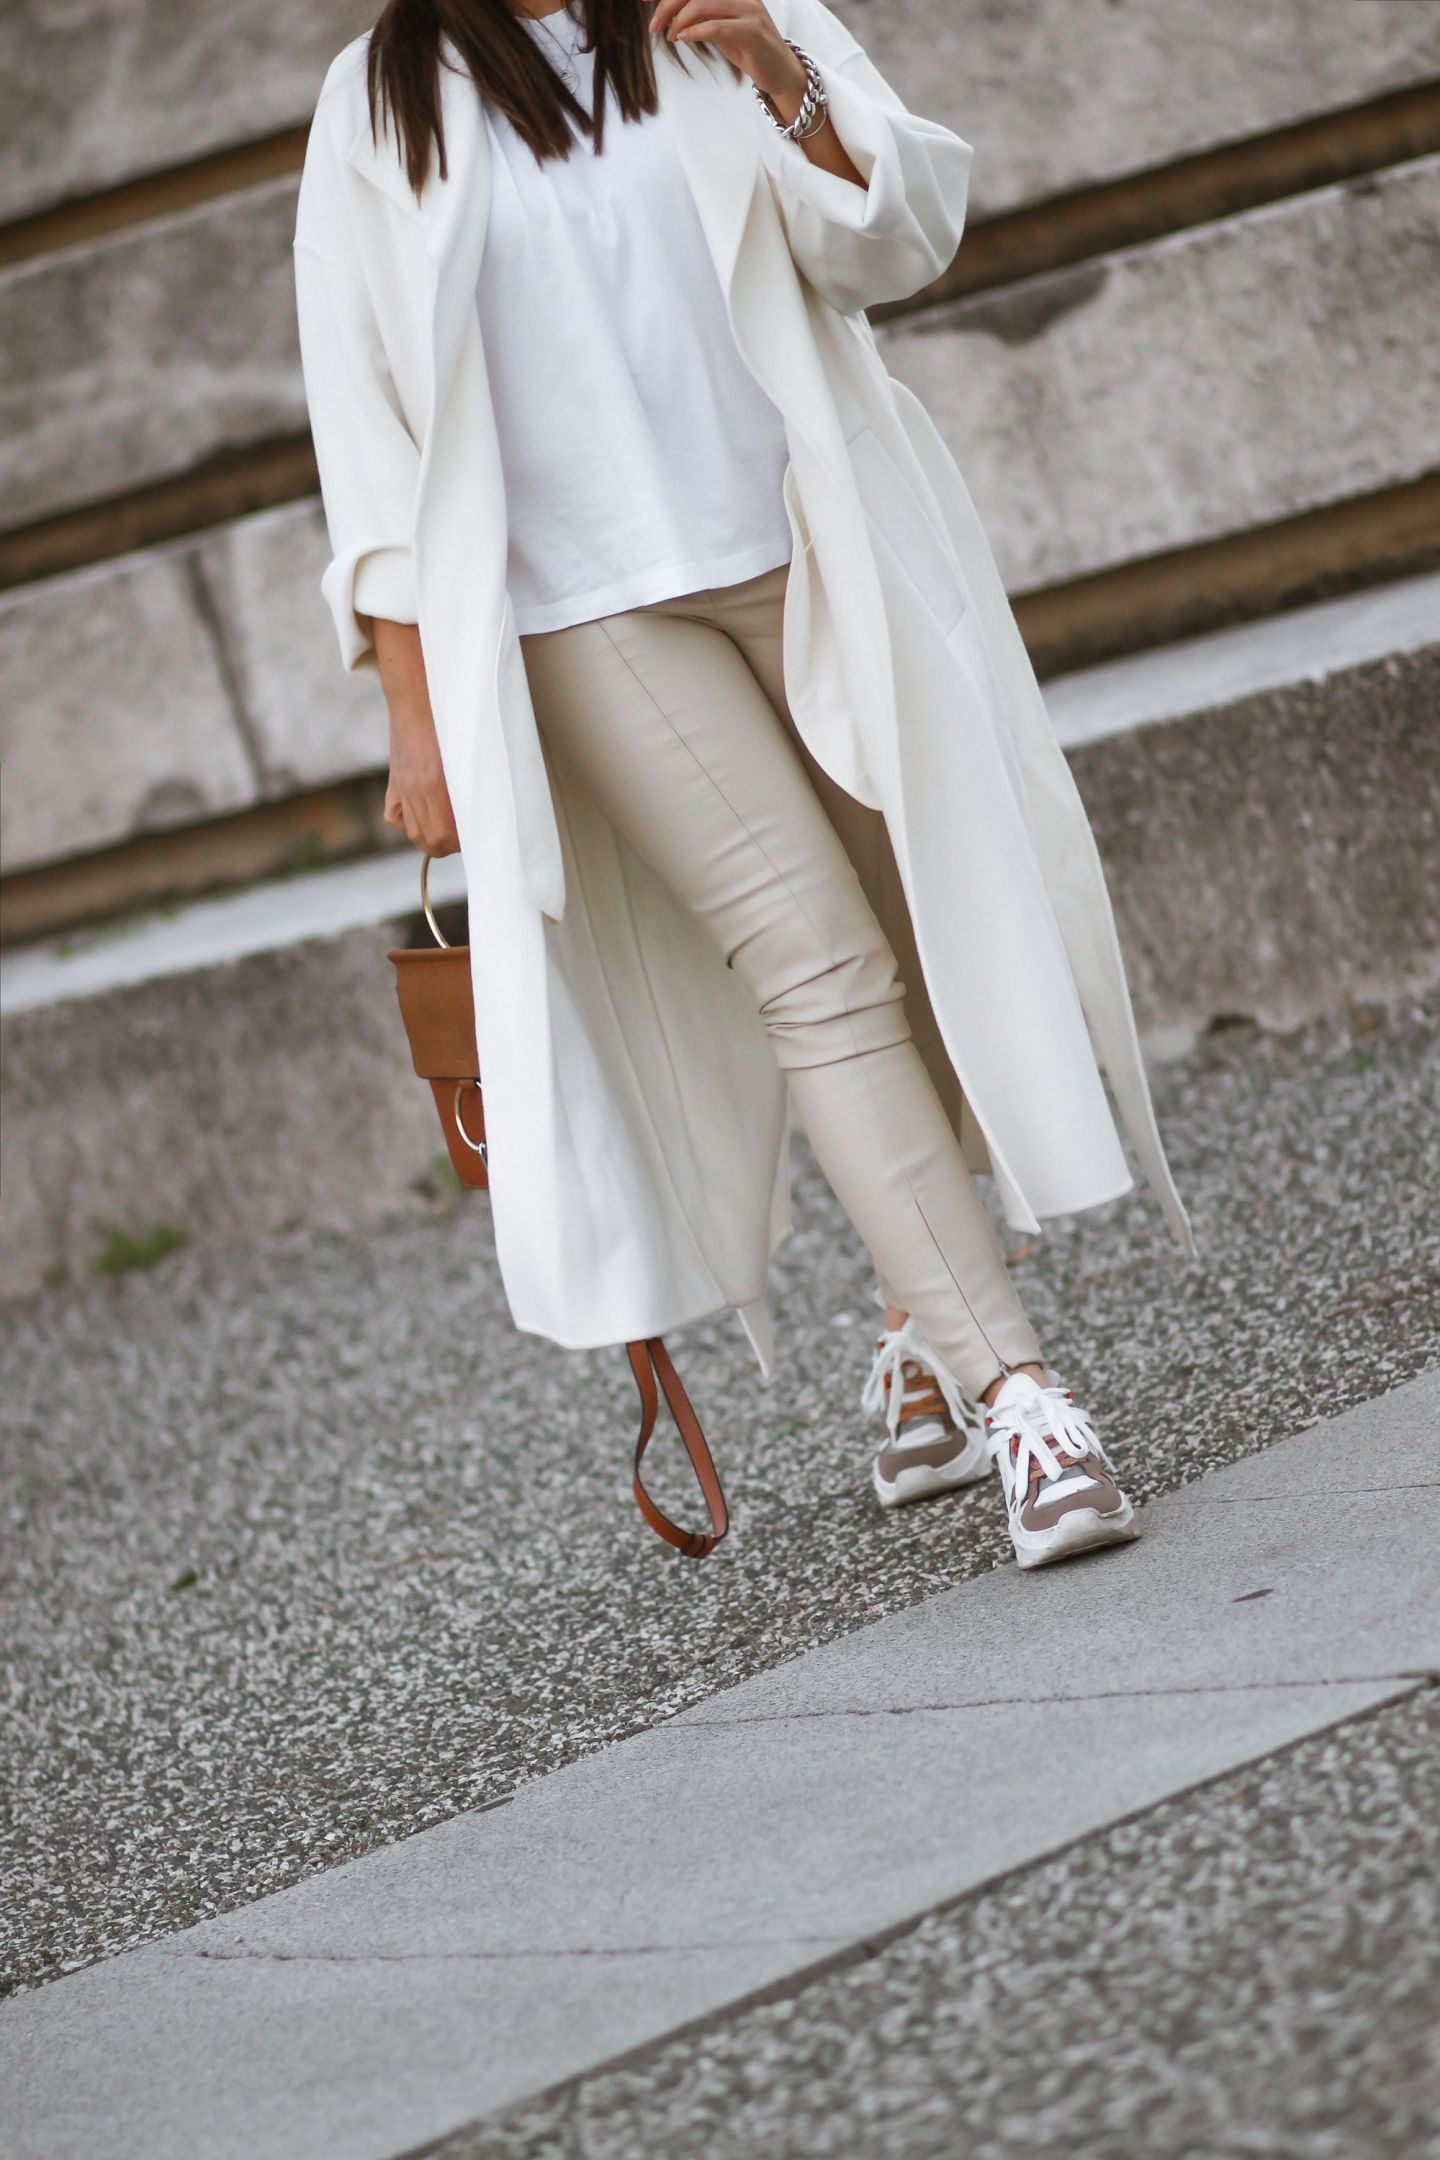 blogueuse mode, instagram, zara, manteau blanc zara, dupe maxmara, pantalon simili cuir zara, the green ananas, look pinterest, french blogger, HELLOOO 2020 ! LE MANTEAU BLANC INSPI MAXMARA